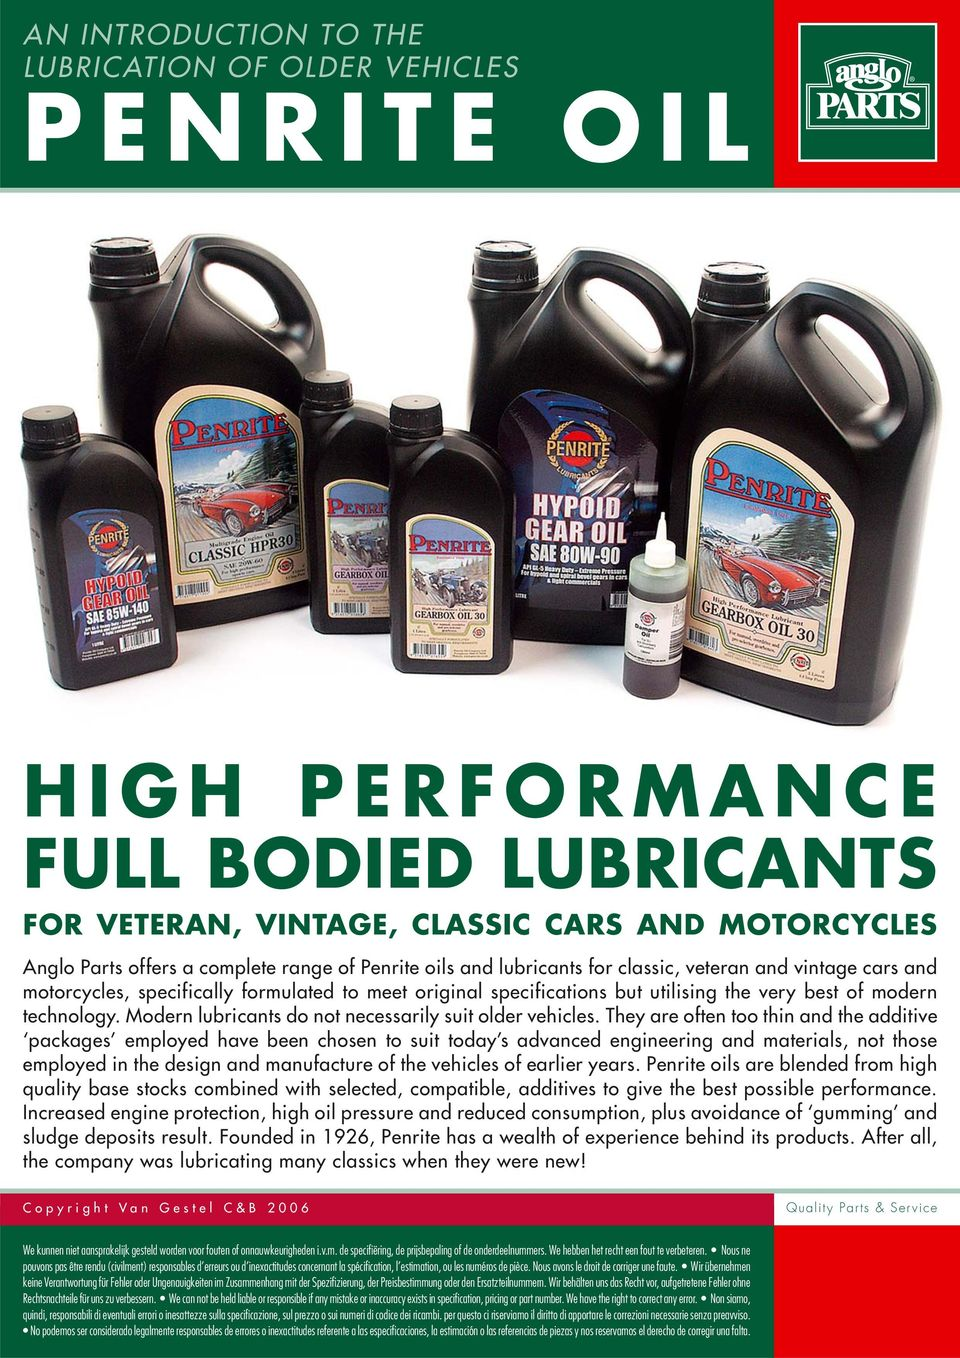 Modern lubricants do not necessarily suit older vehicles.